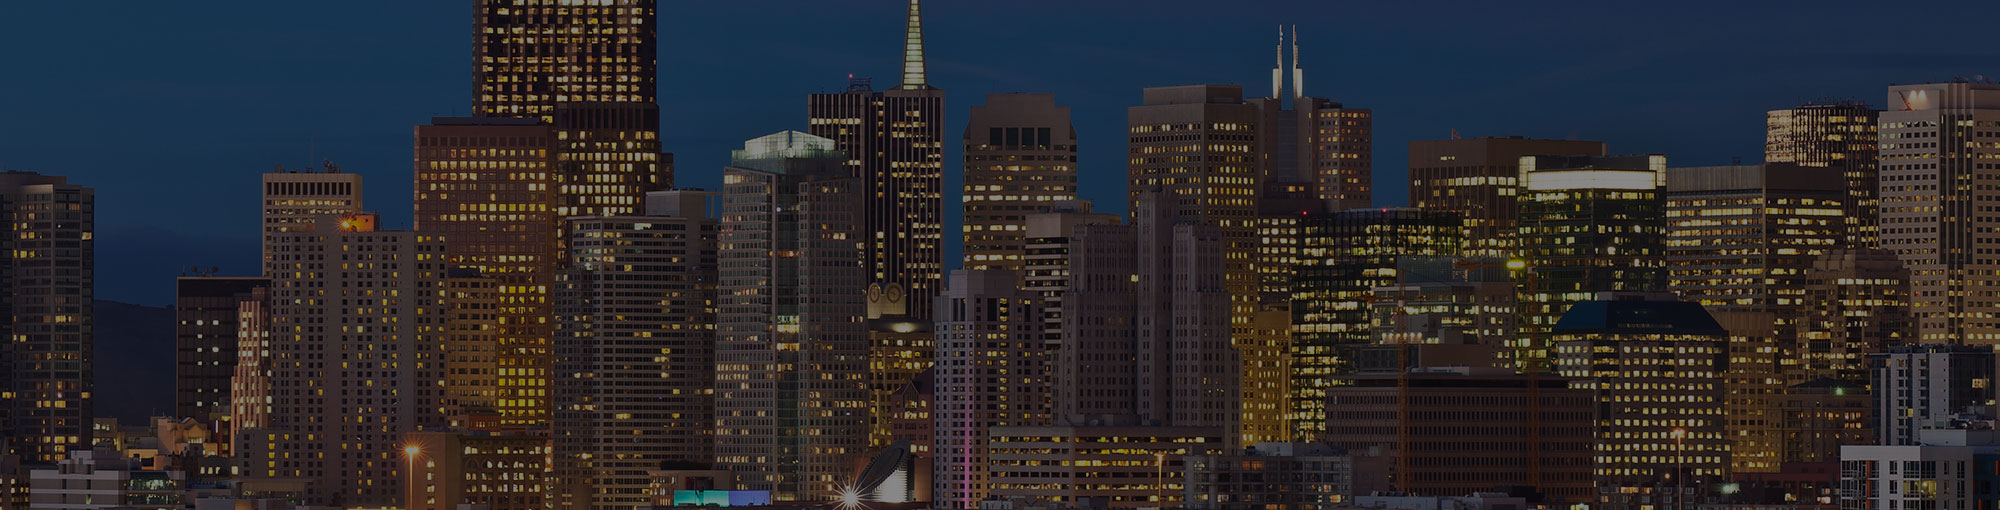 West Coast Expansion Continues with the Addition of 13 Labor & Employment Lawyers from Miller Law Group in California